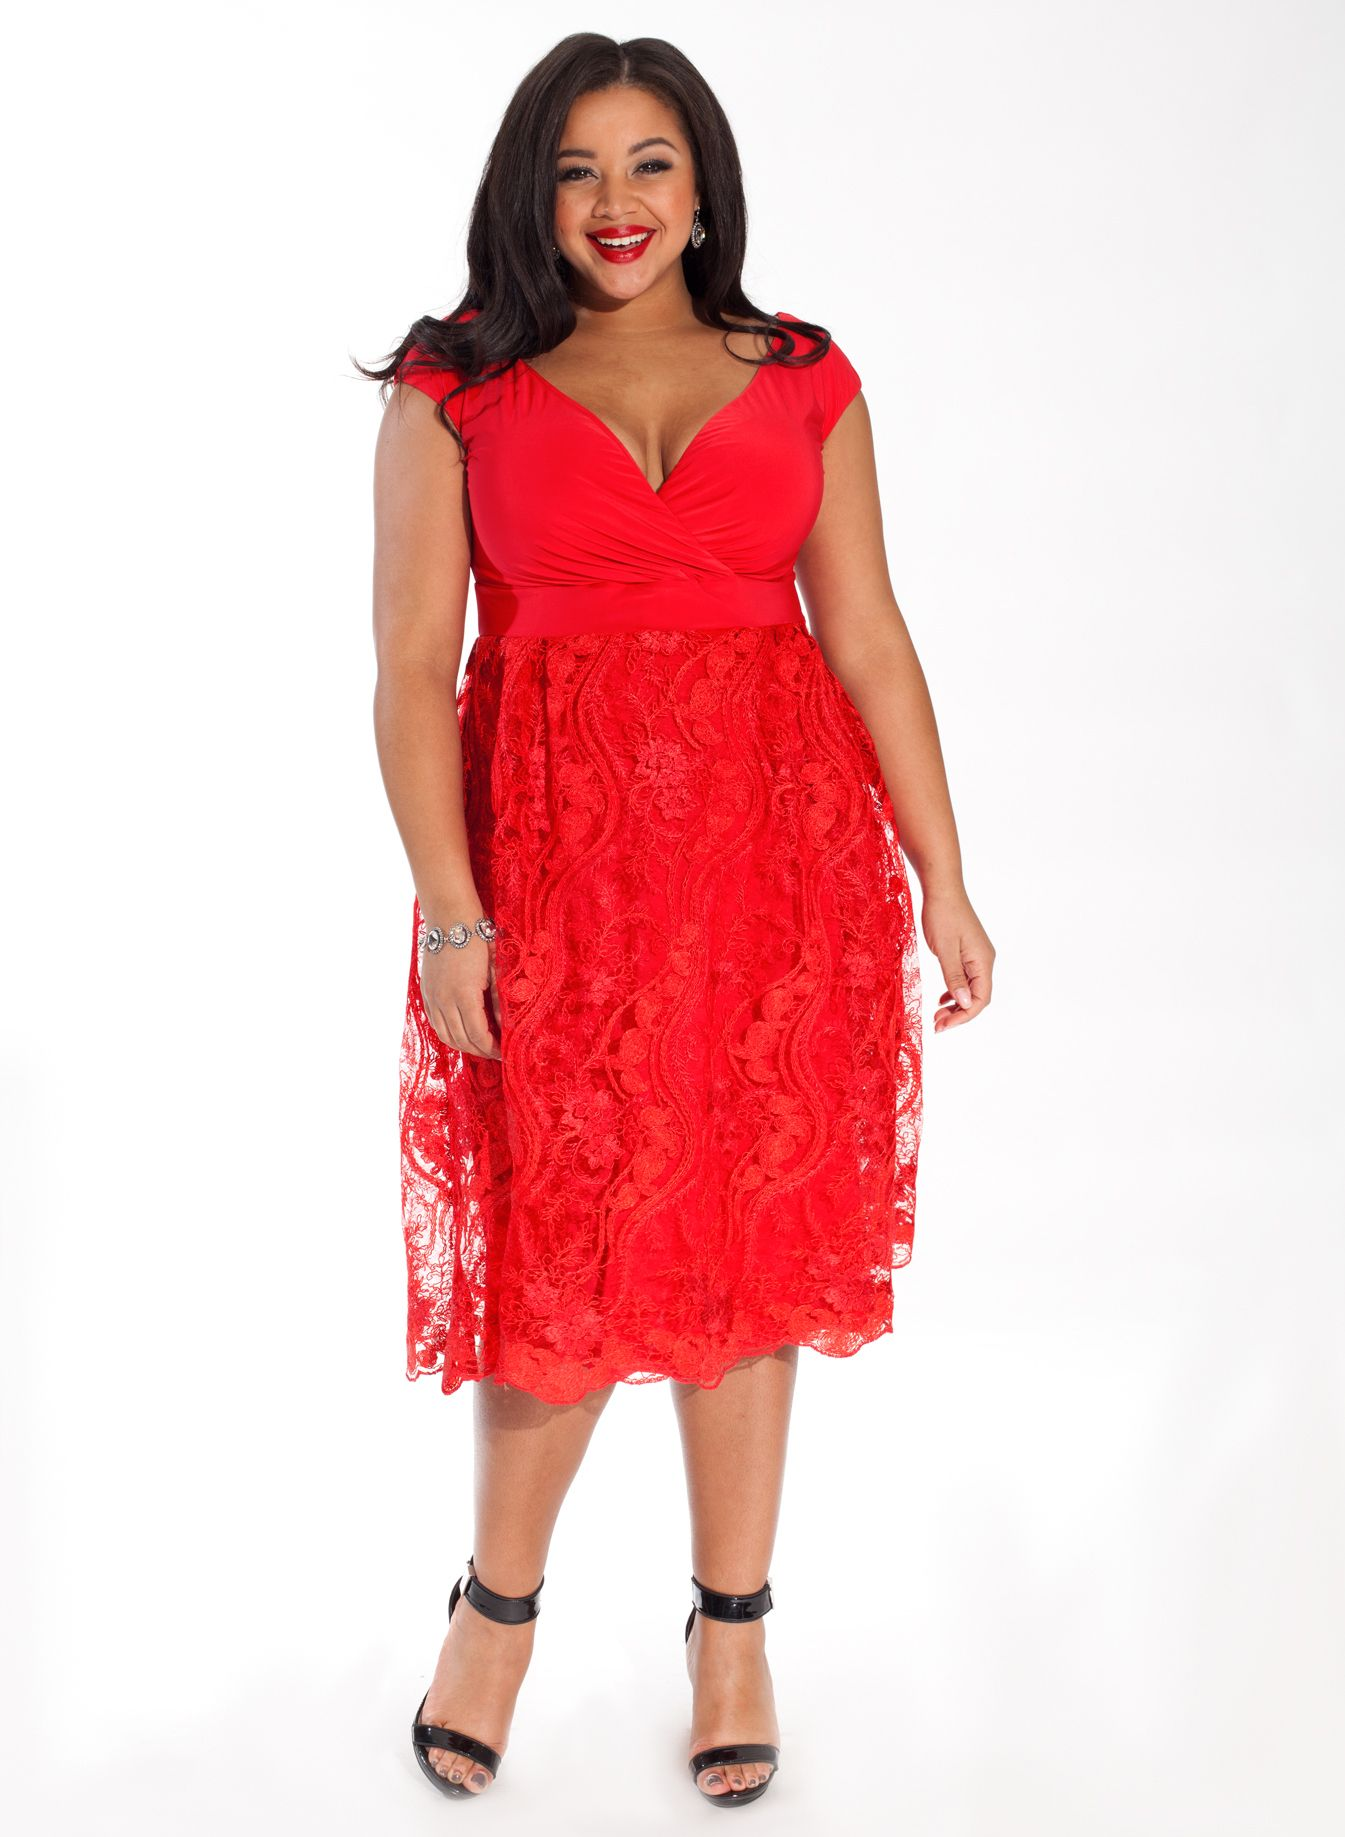 Adelle Plus Size Cocktail Dress in Garnet Lace | Featured Products ...